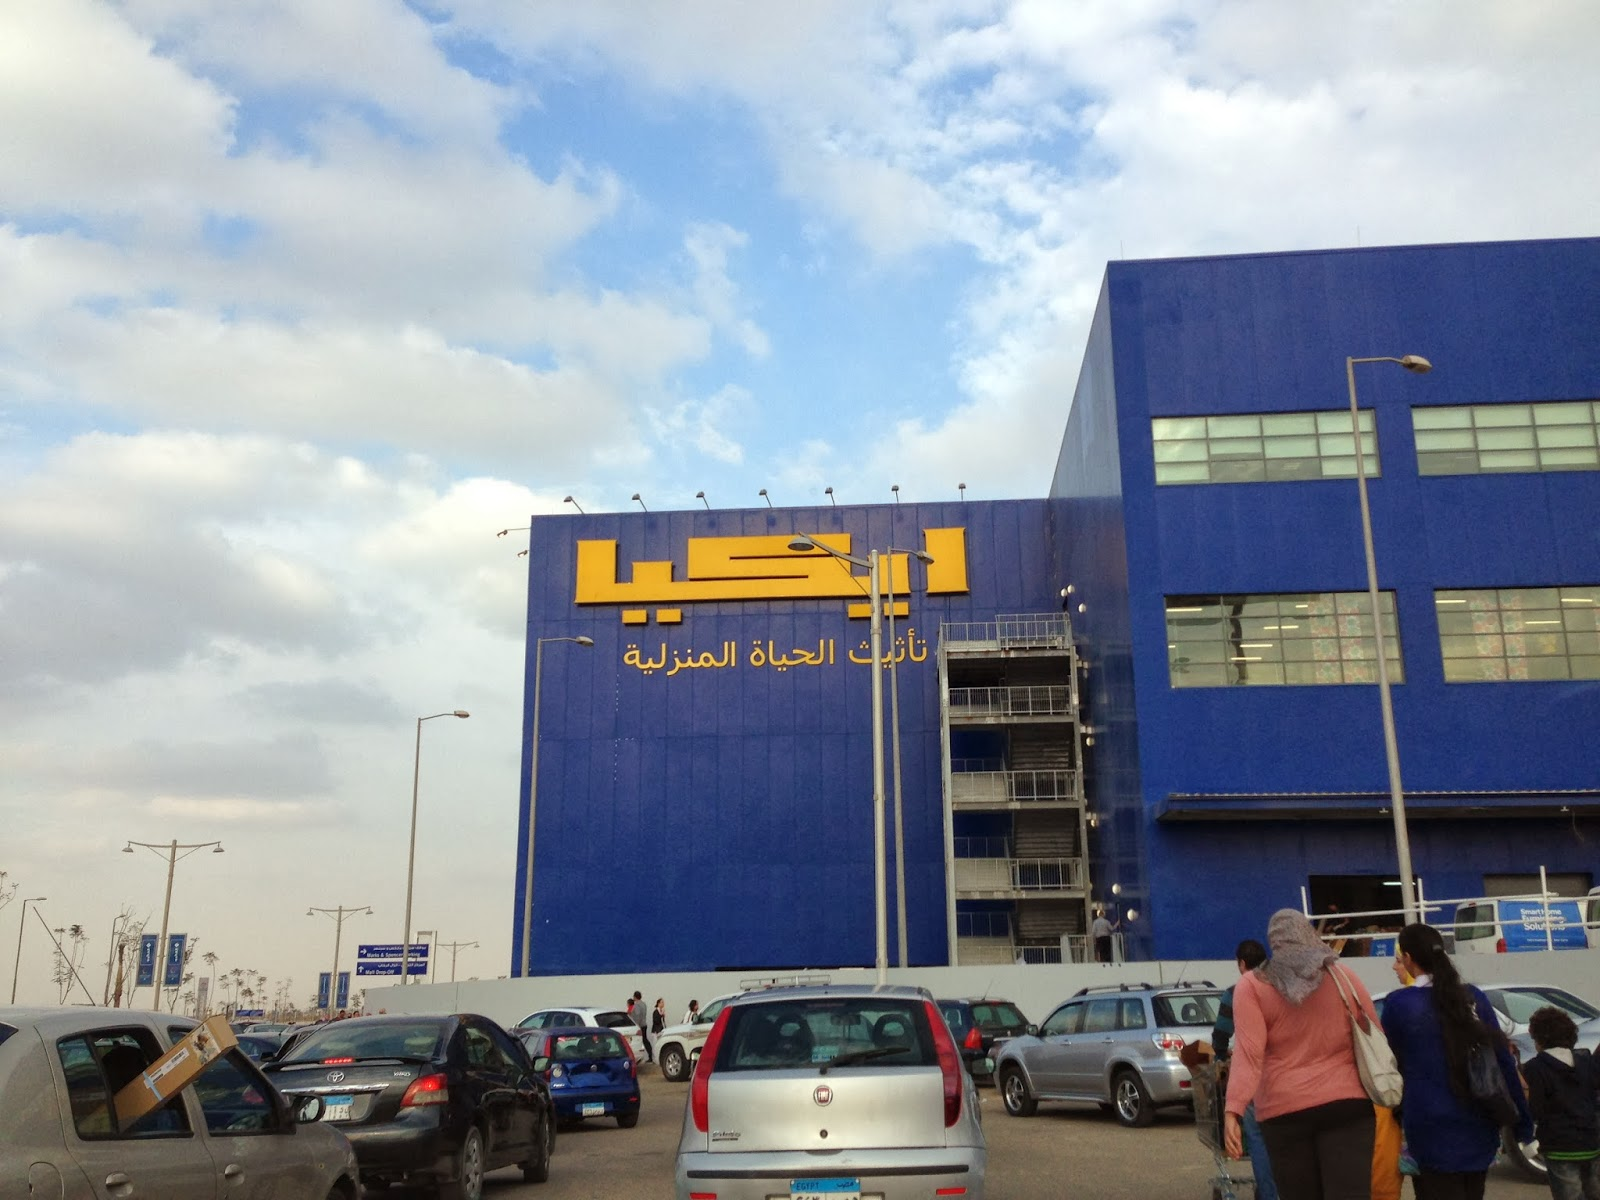 ikea strategy in egypt Welcome to ikea egypt official page ikea furniture shop in cairo, egypt communitysee all.